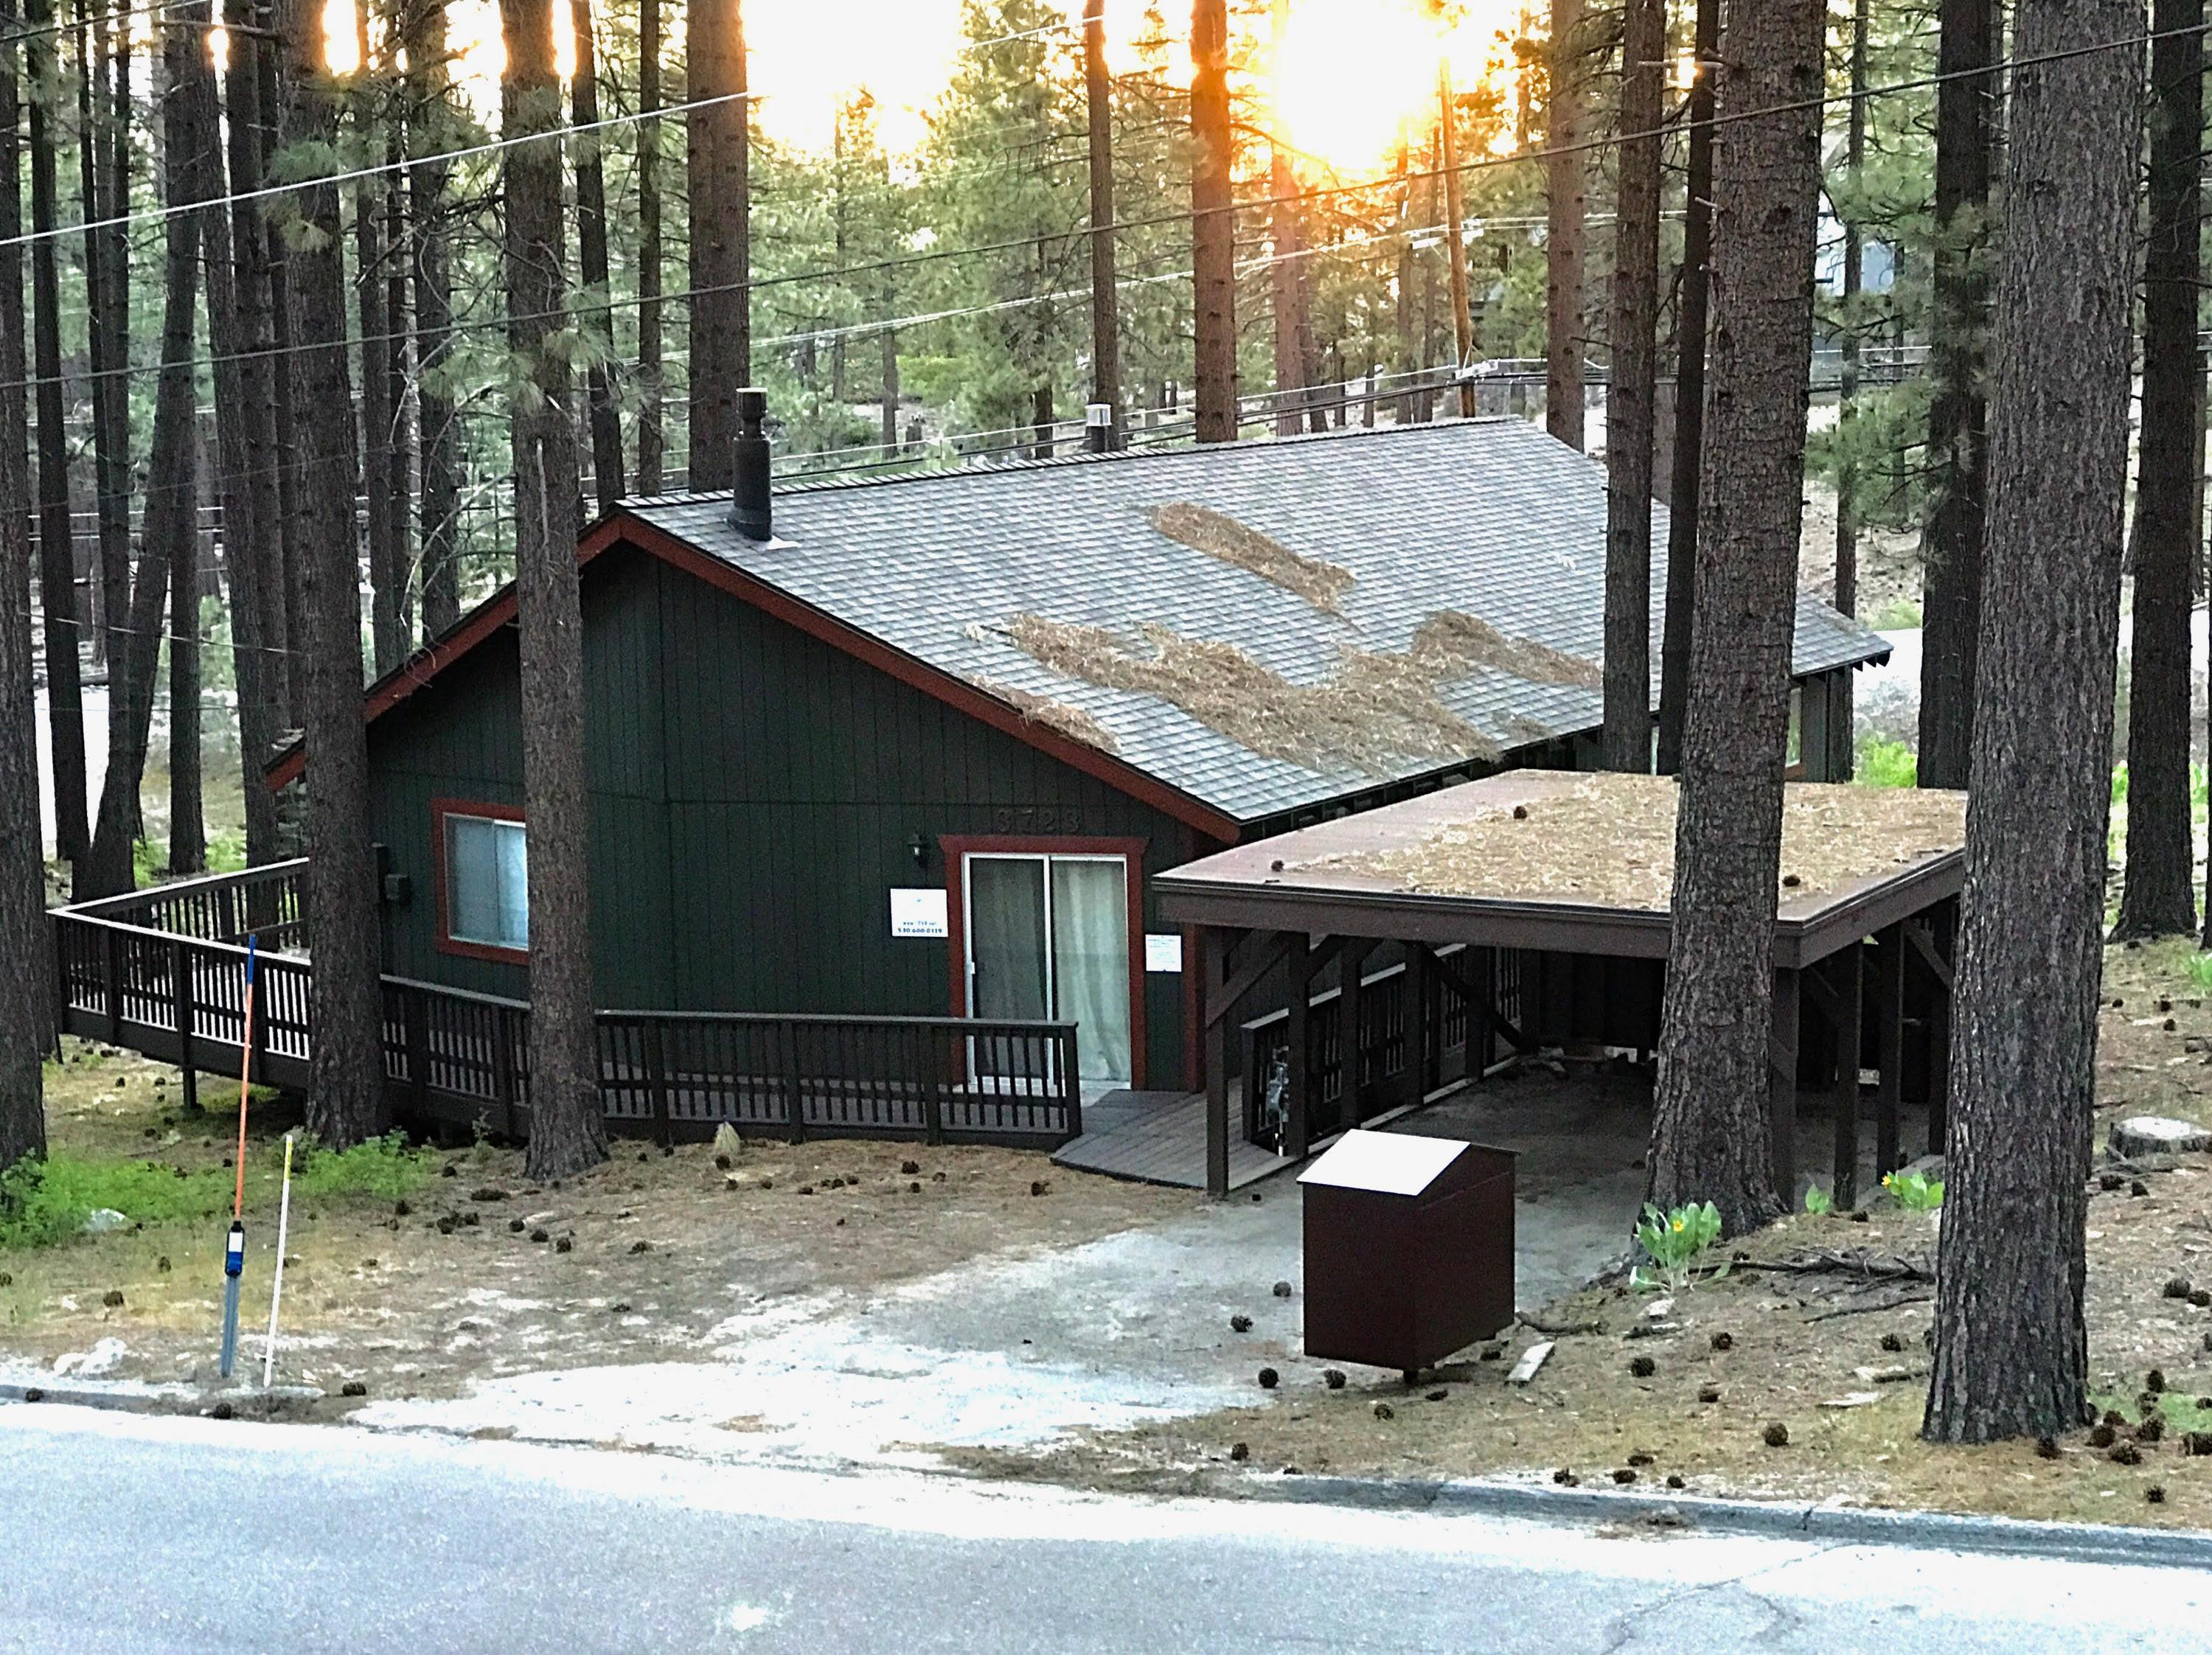 lake california rent of keeptahoeblue tahoe cabins pin to homes the in north none for beauty is second rental vacation